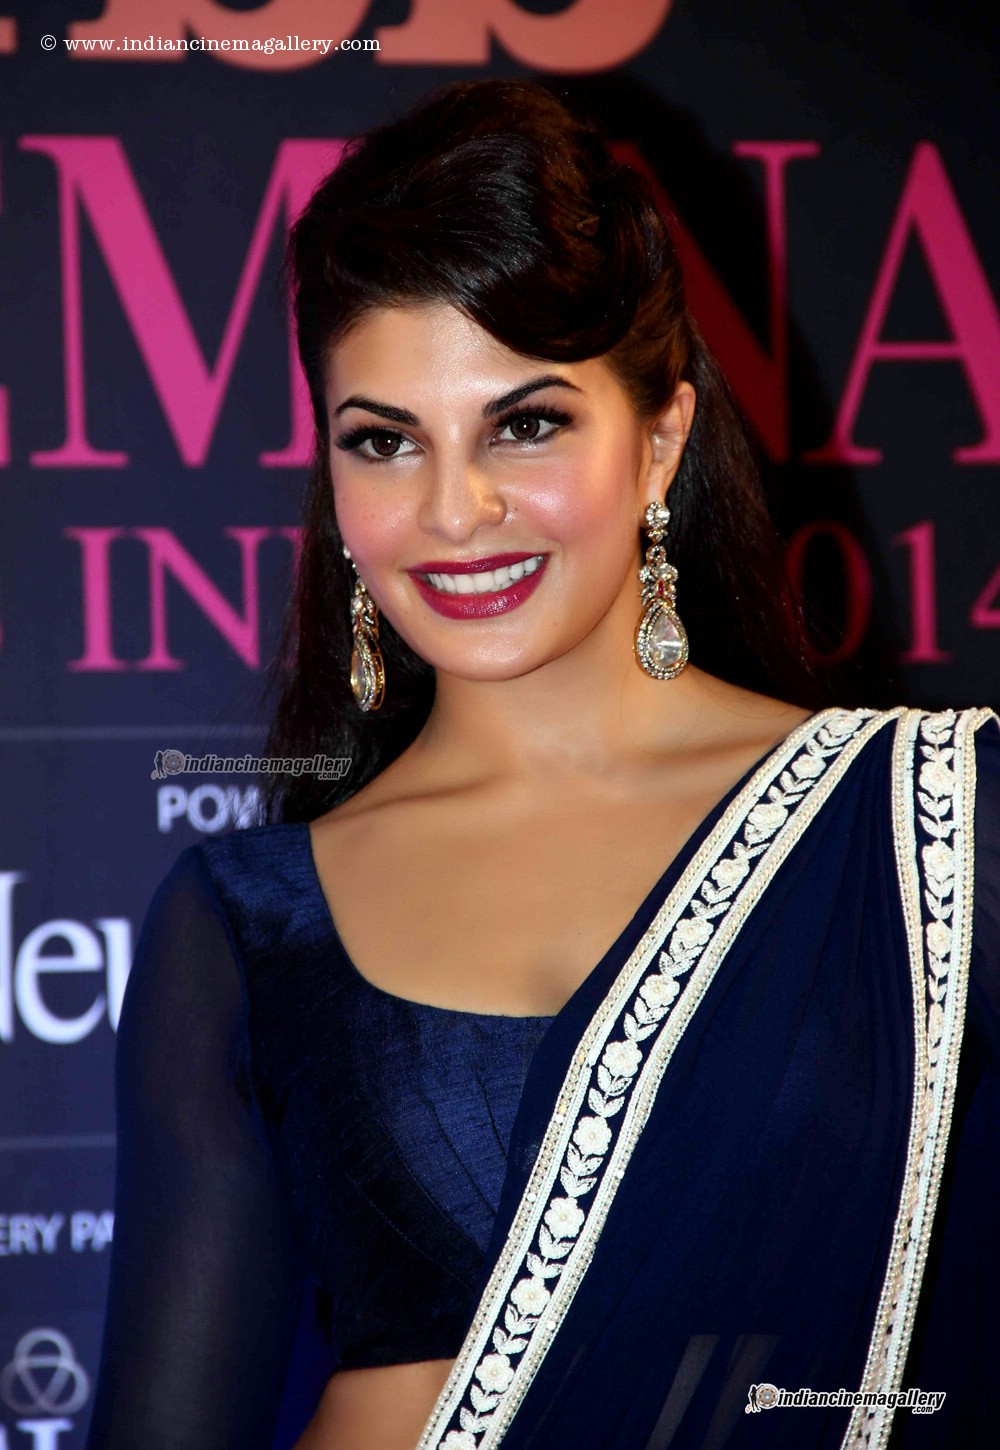 Jacqueline fernandez at Femina Miss India 2014 1 1235.JPG - Jacqueline ...